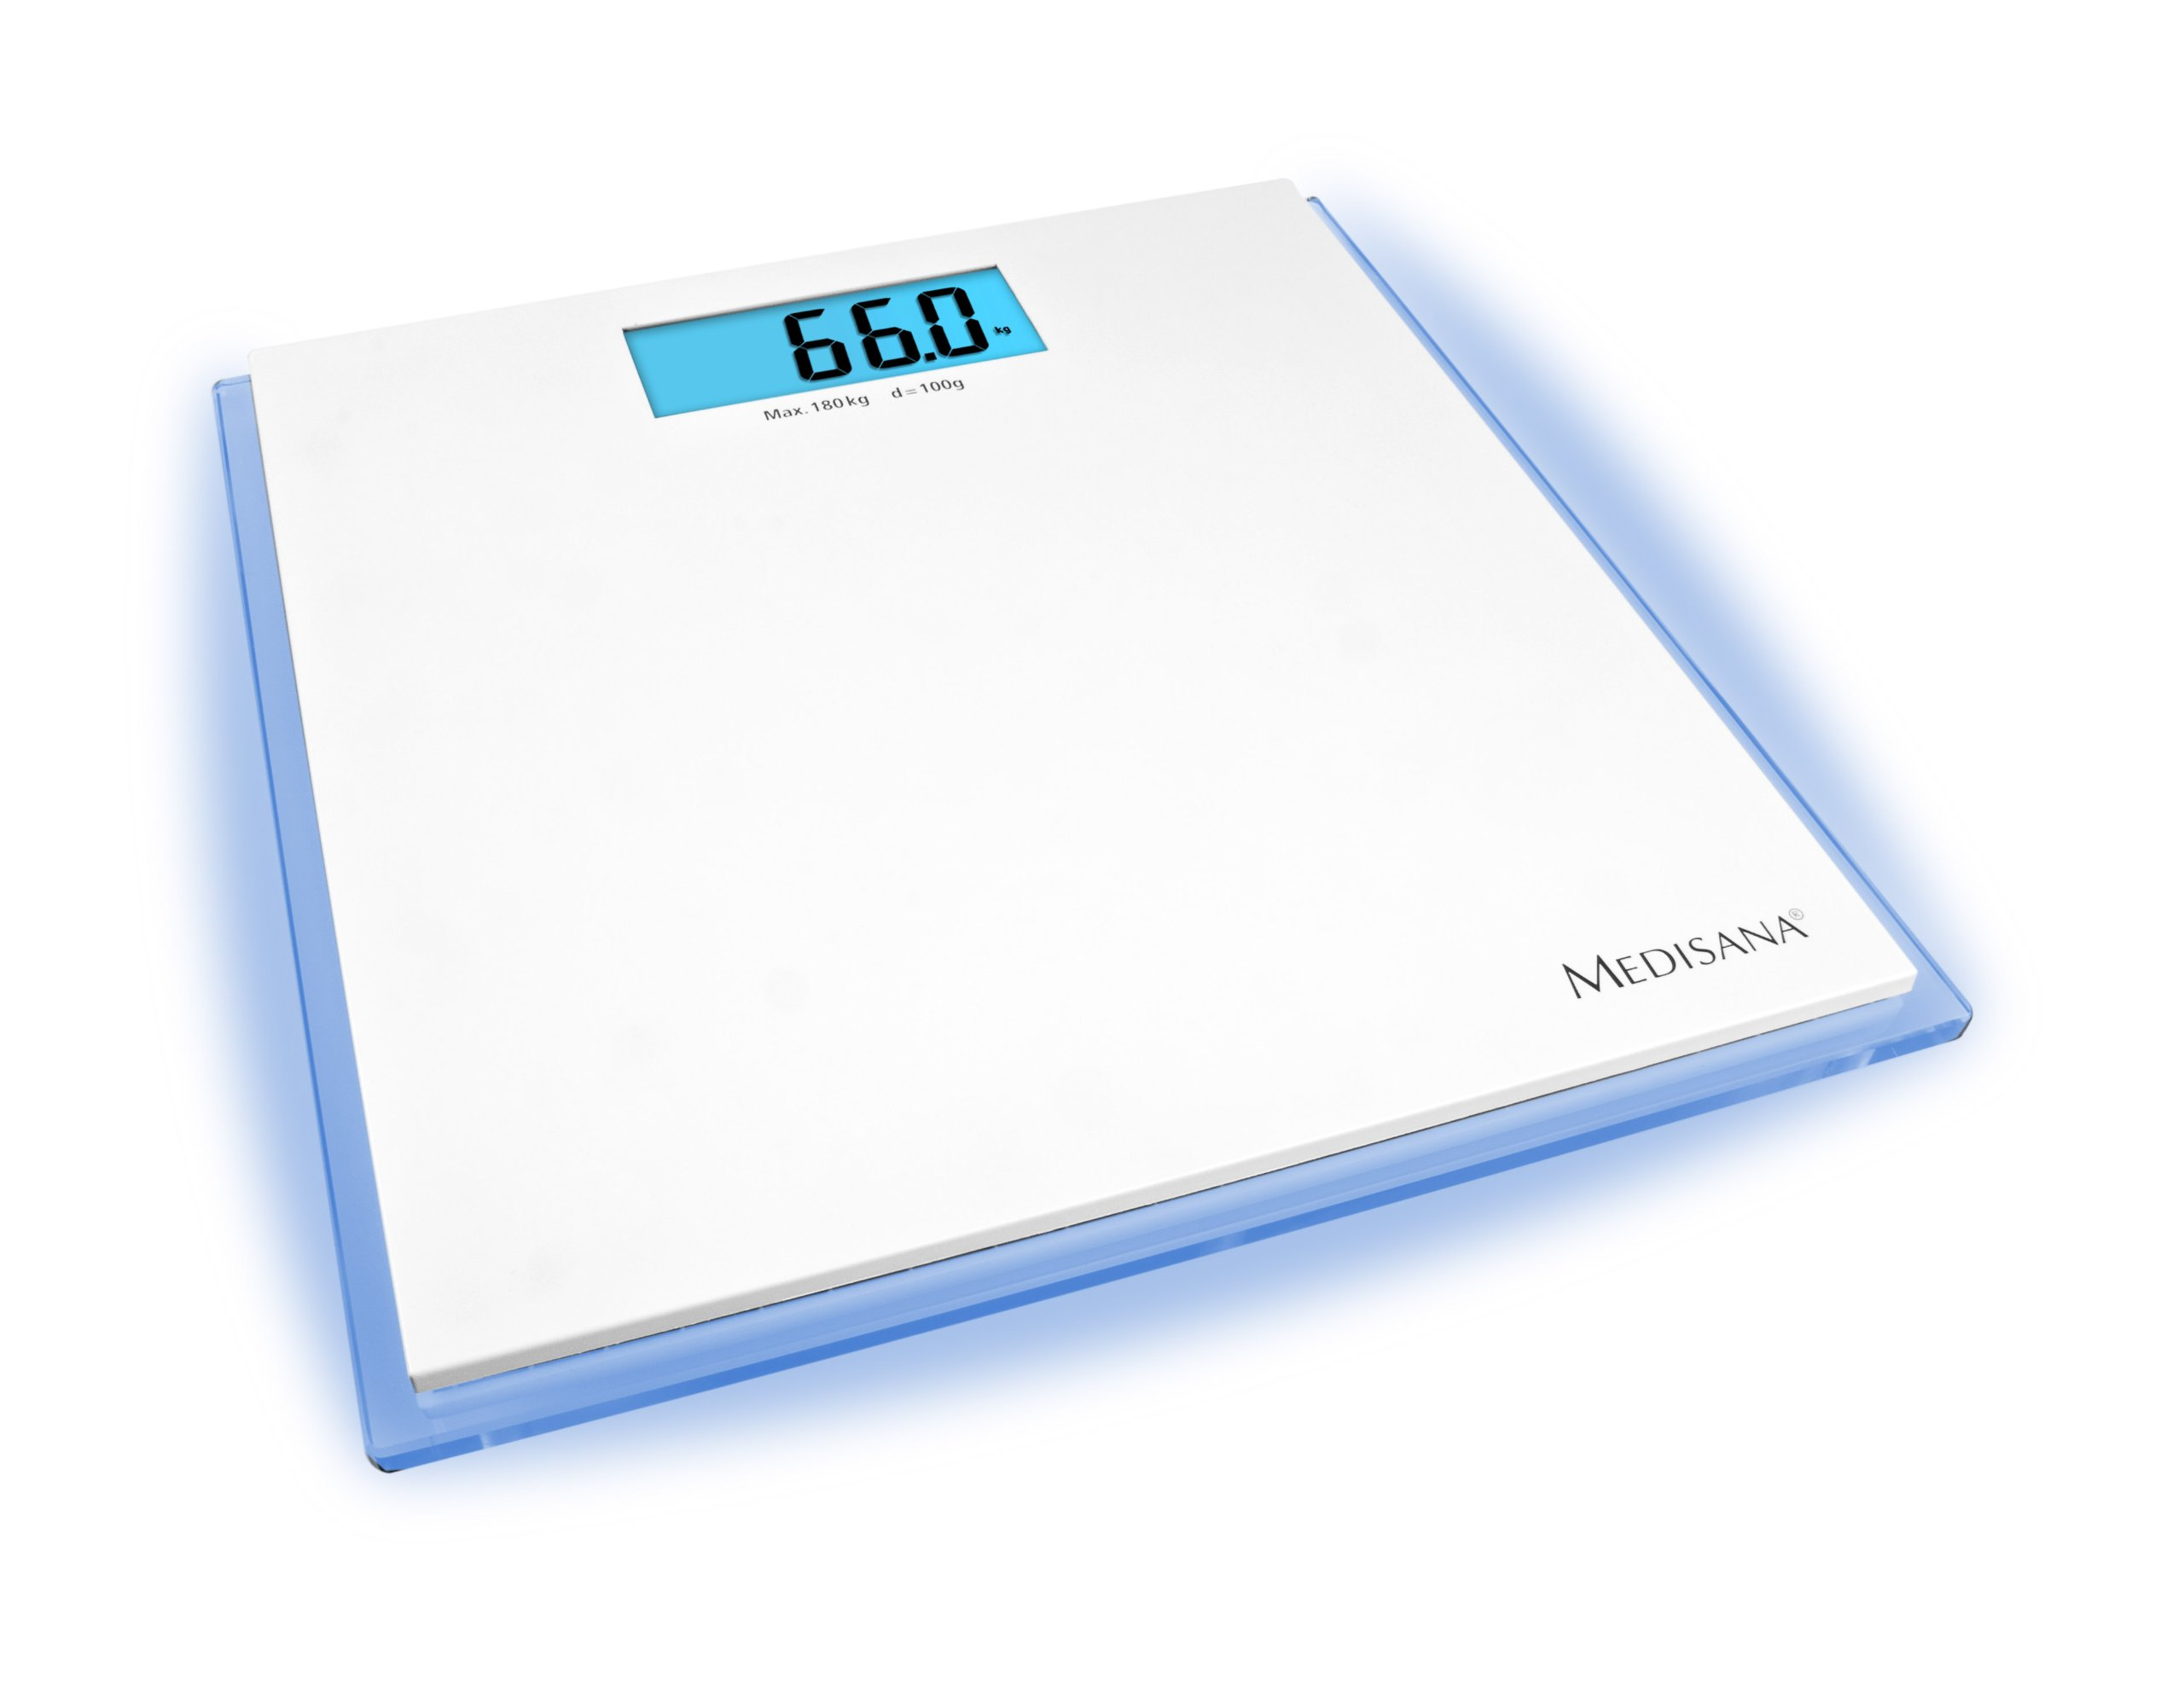 Personal Scale ISB with Blue LED Illumination by Medisana